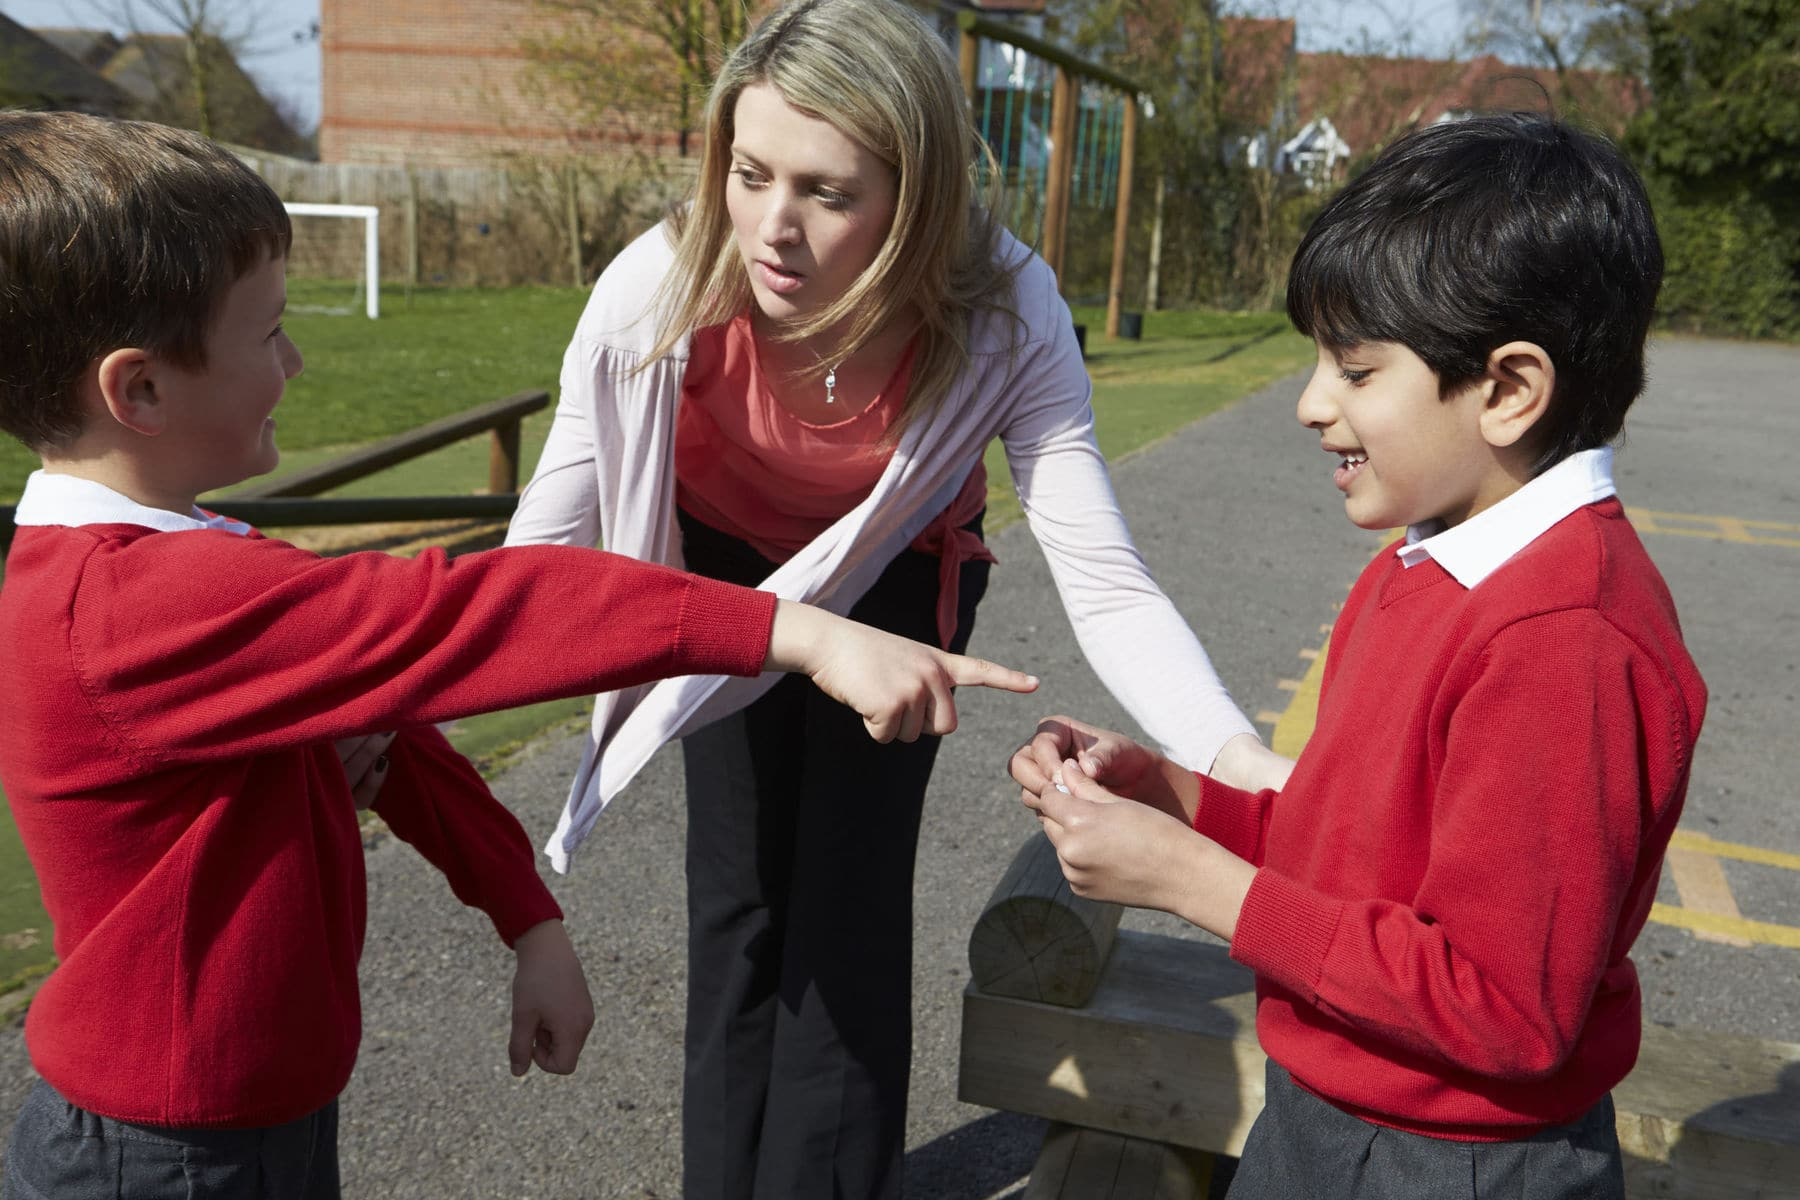 Teacher stopping fight between students with challenging behaviour.